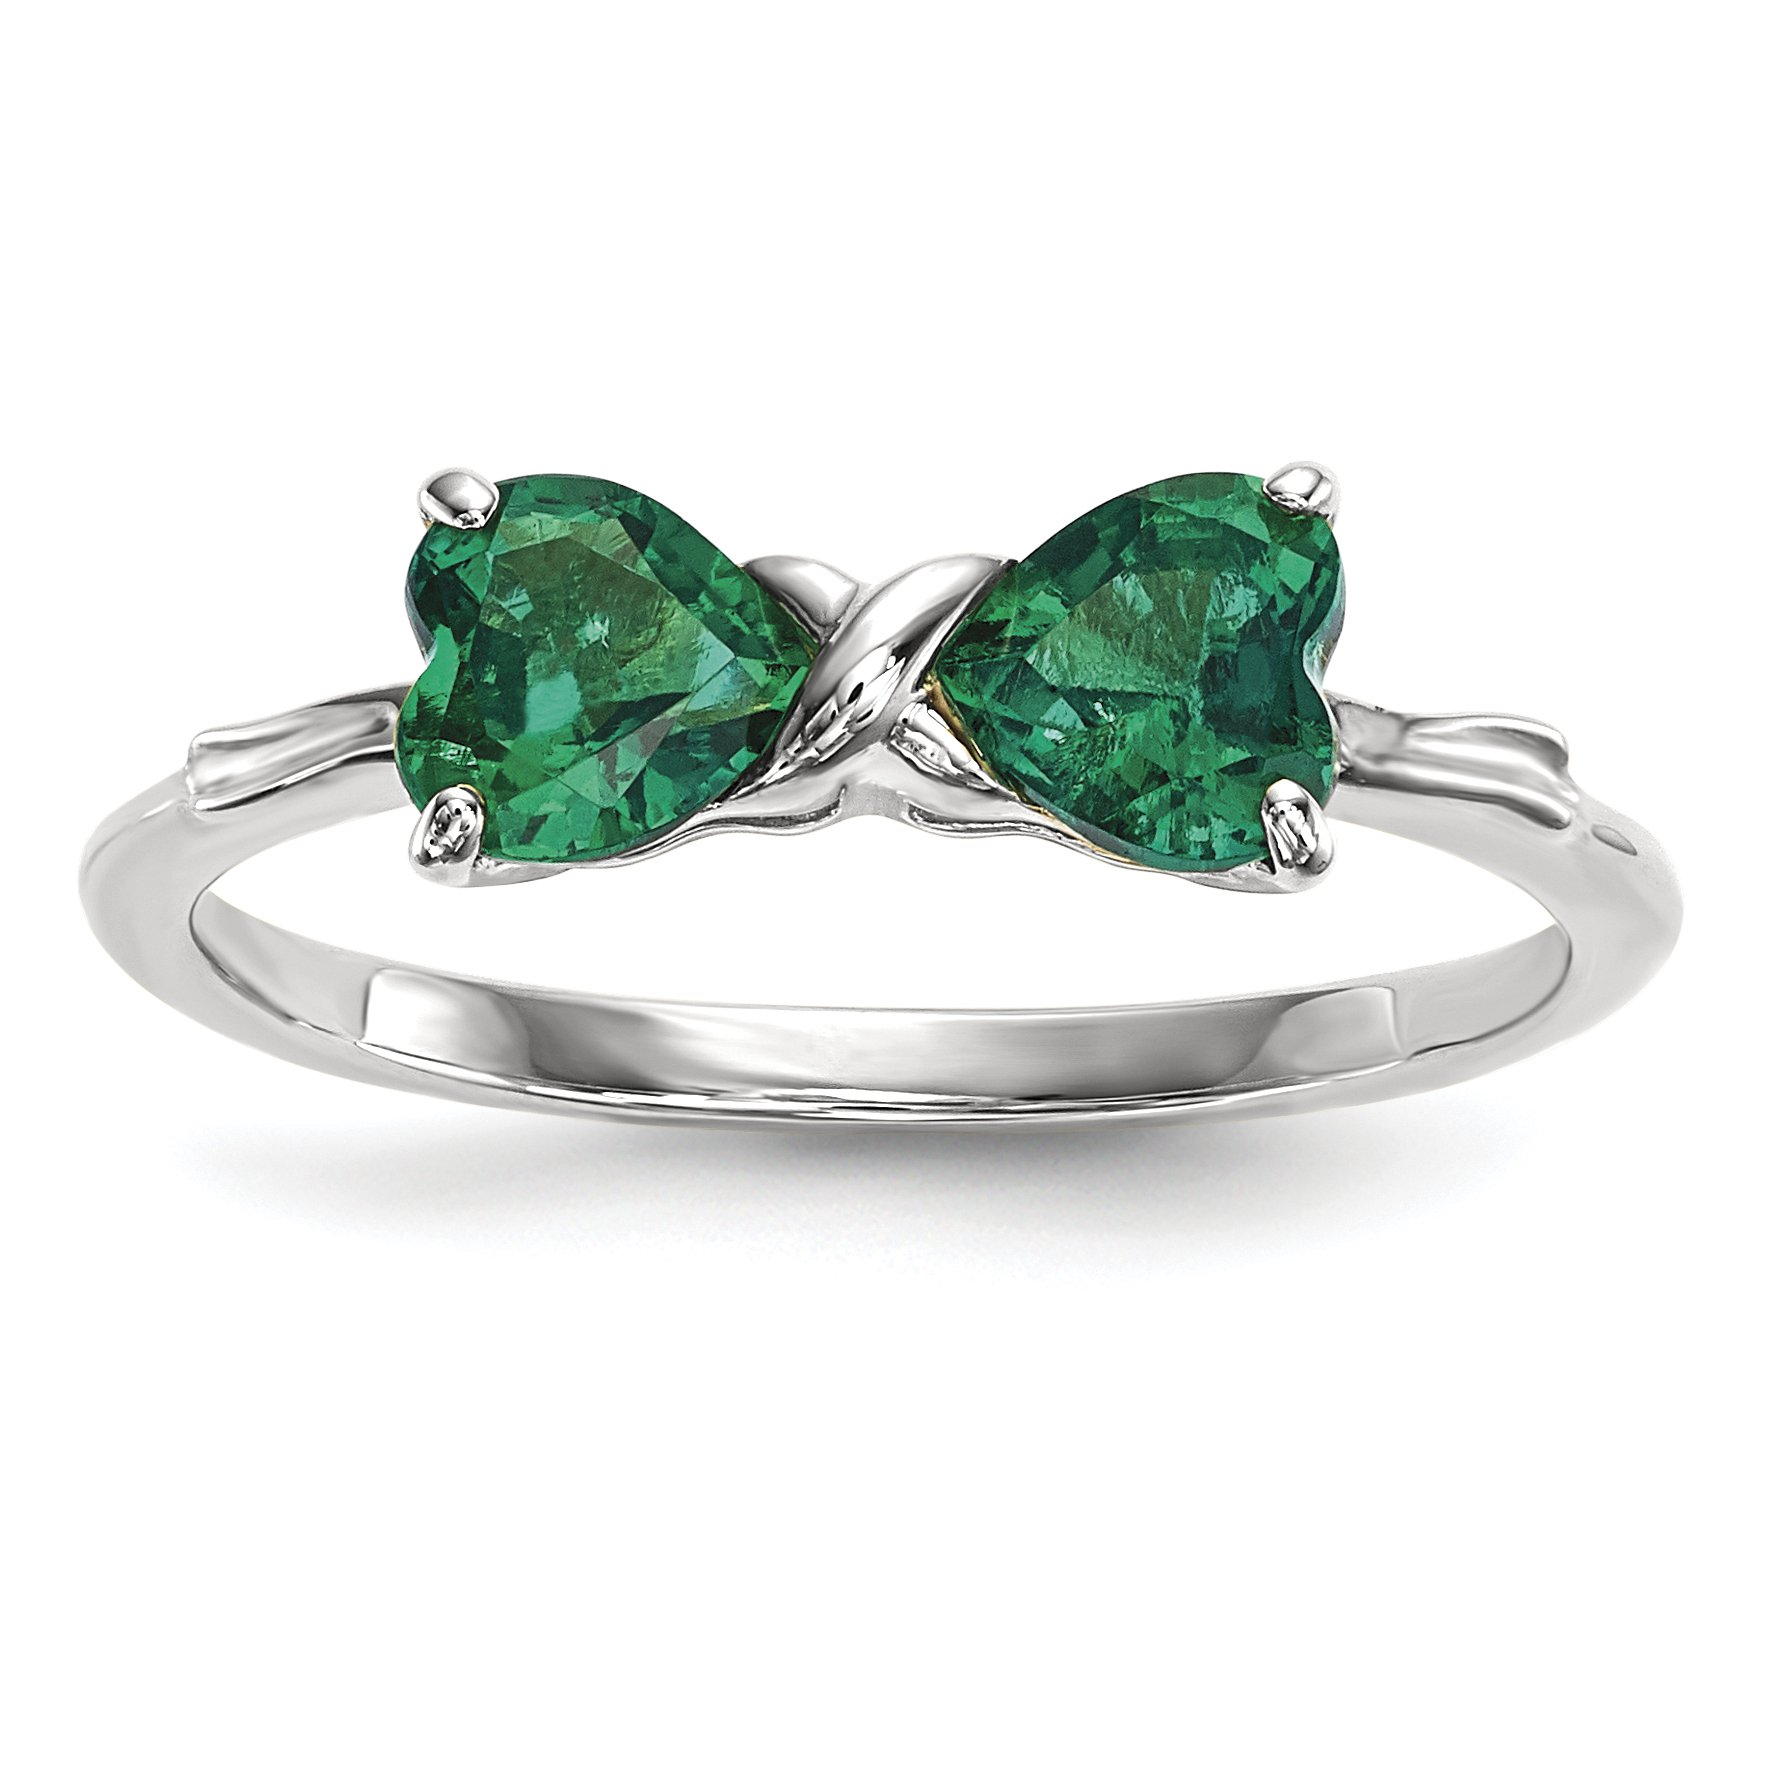 ICE CARATS 14k White Gold Created Green Emerald Bow Band Ring Size 7.00 Birthstone May Set Style Fine Jewelry Gift Set For Women Heart by ICE CARATS